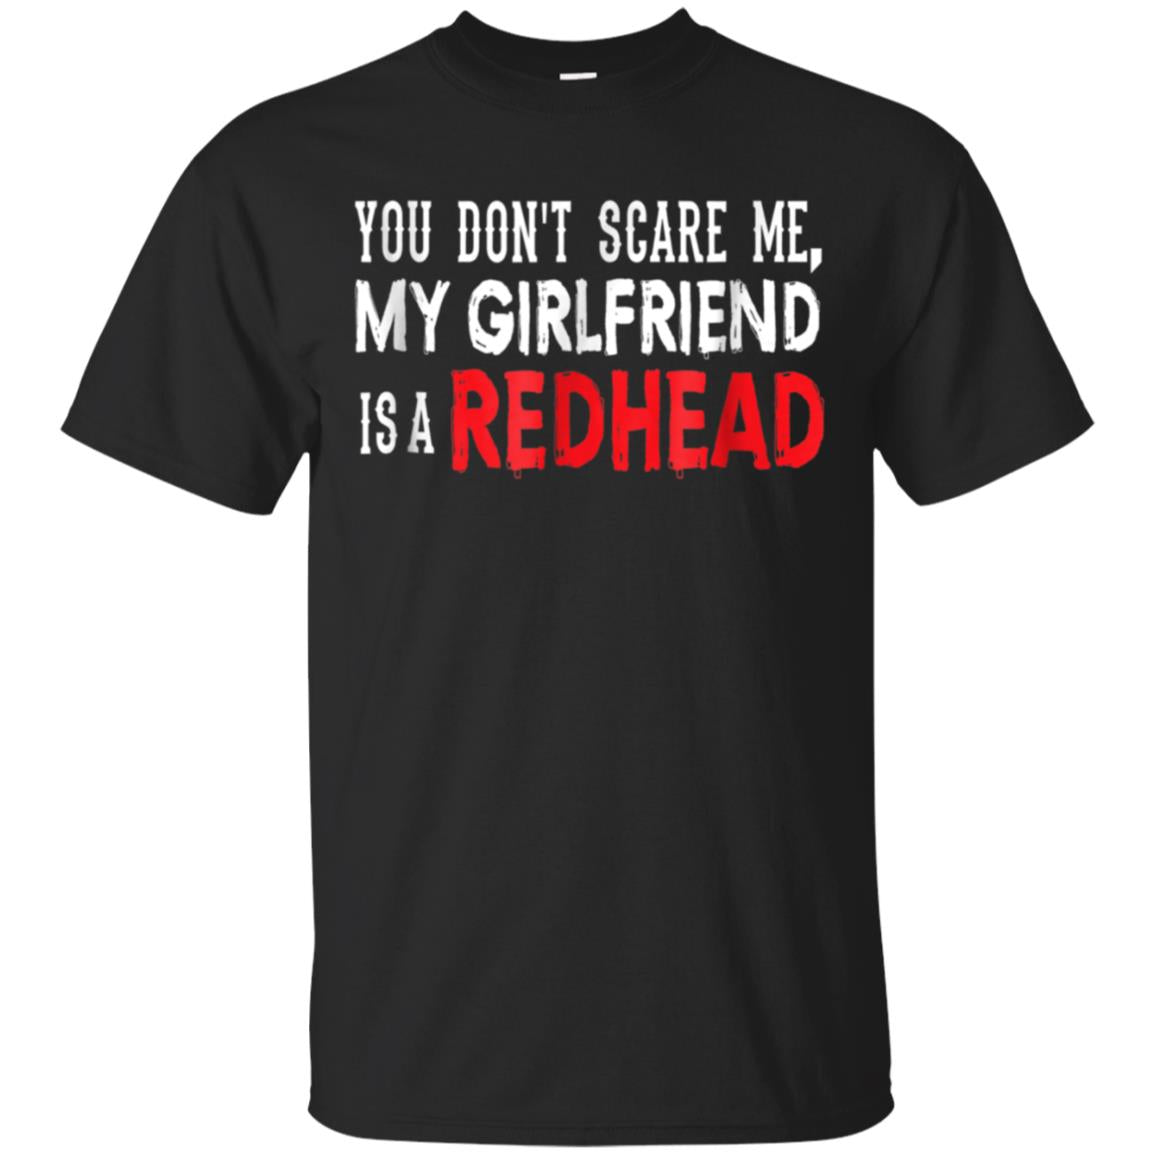 You Don't Scare Me, My Girlfriend is a RedHead T-Shirt 99promocode